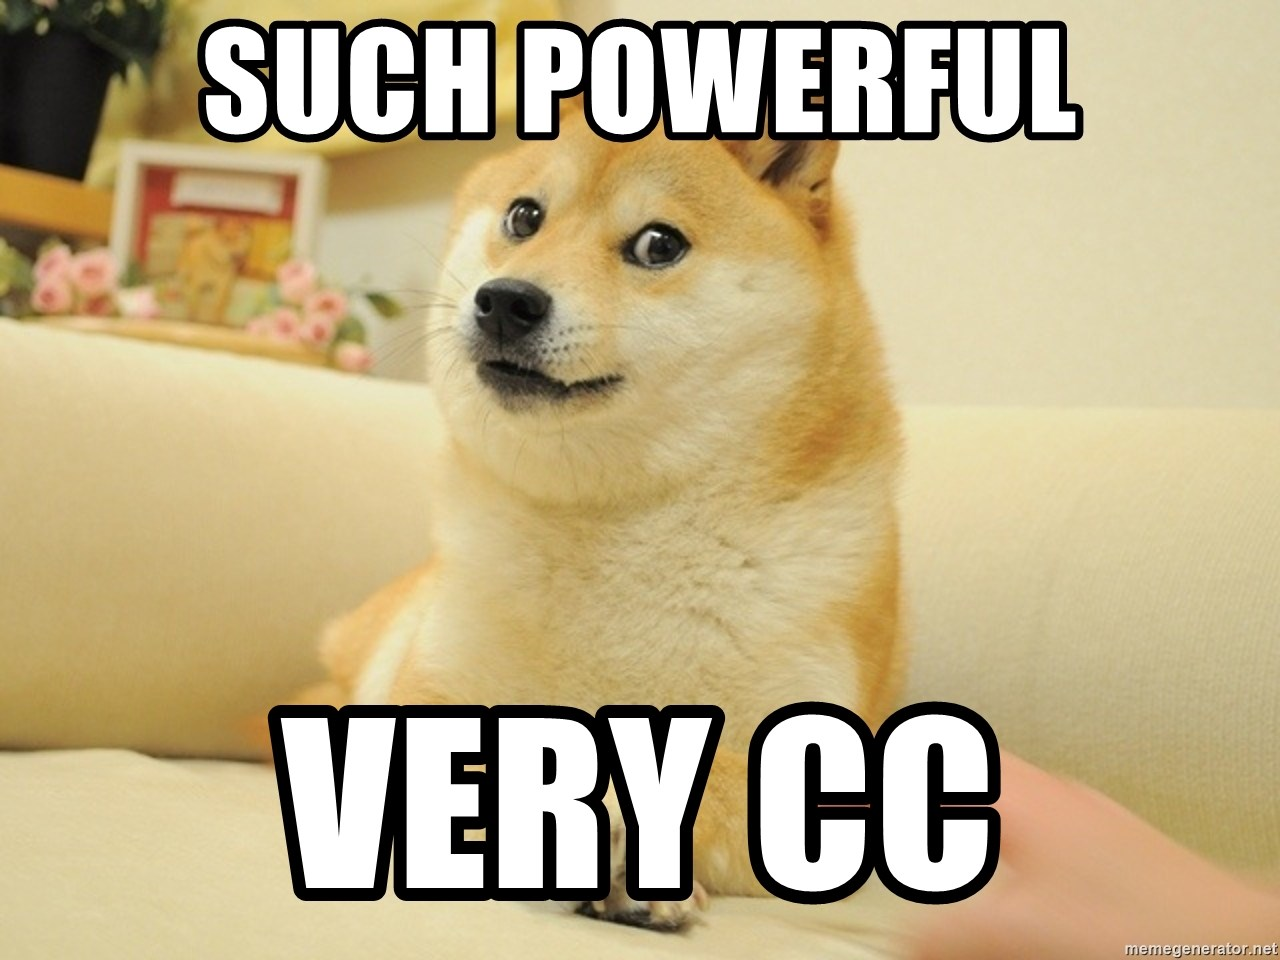 so doge - SUCH powerful very cc